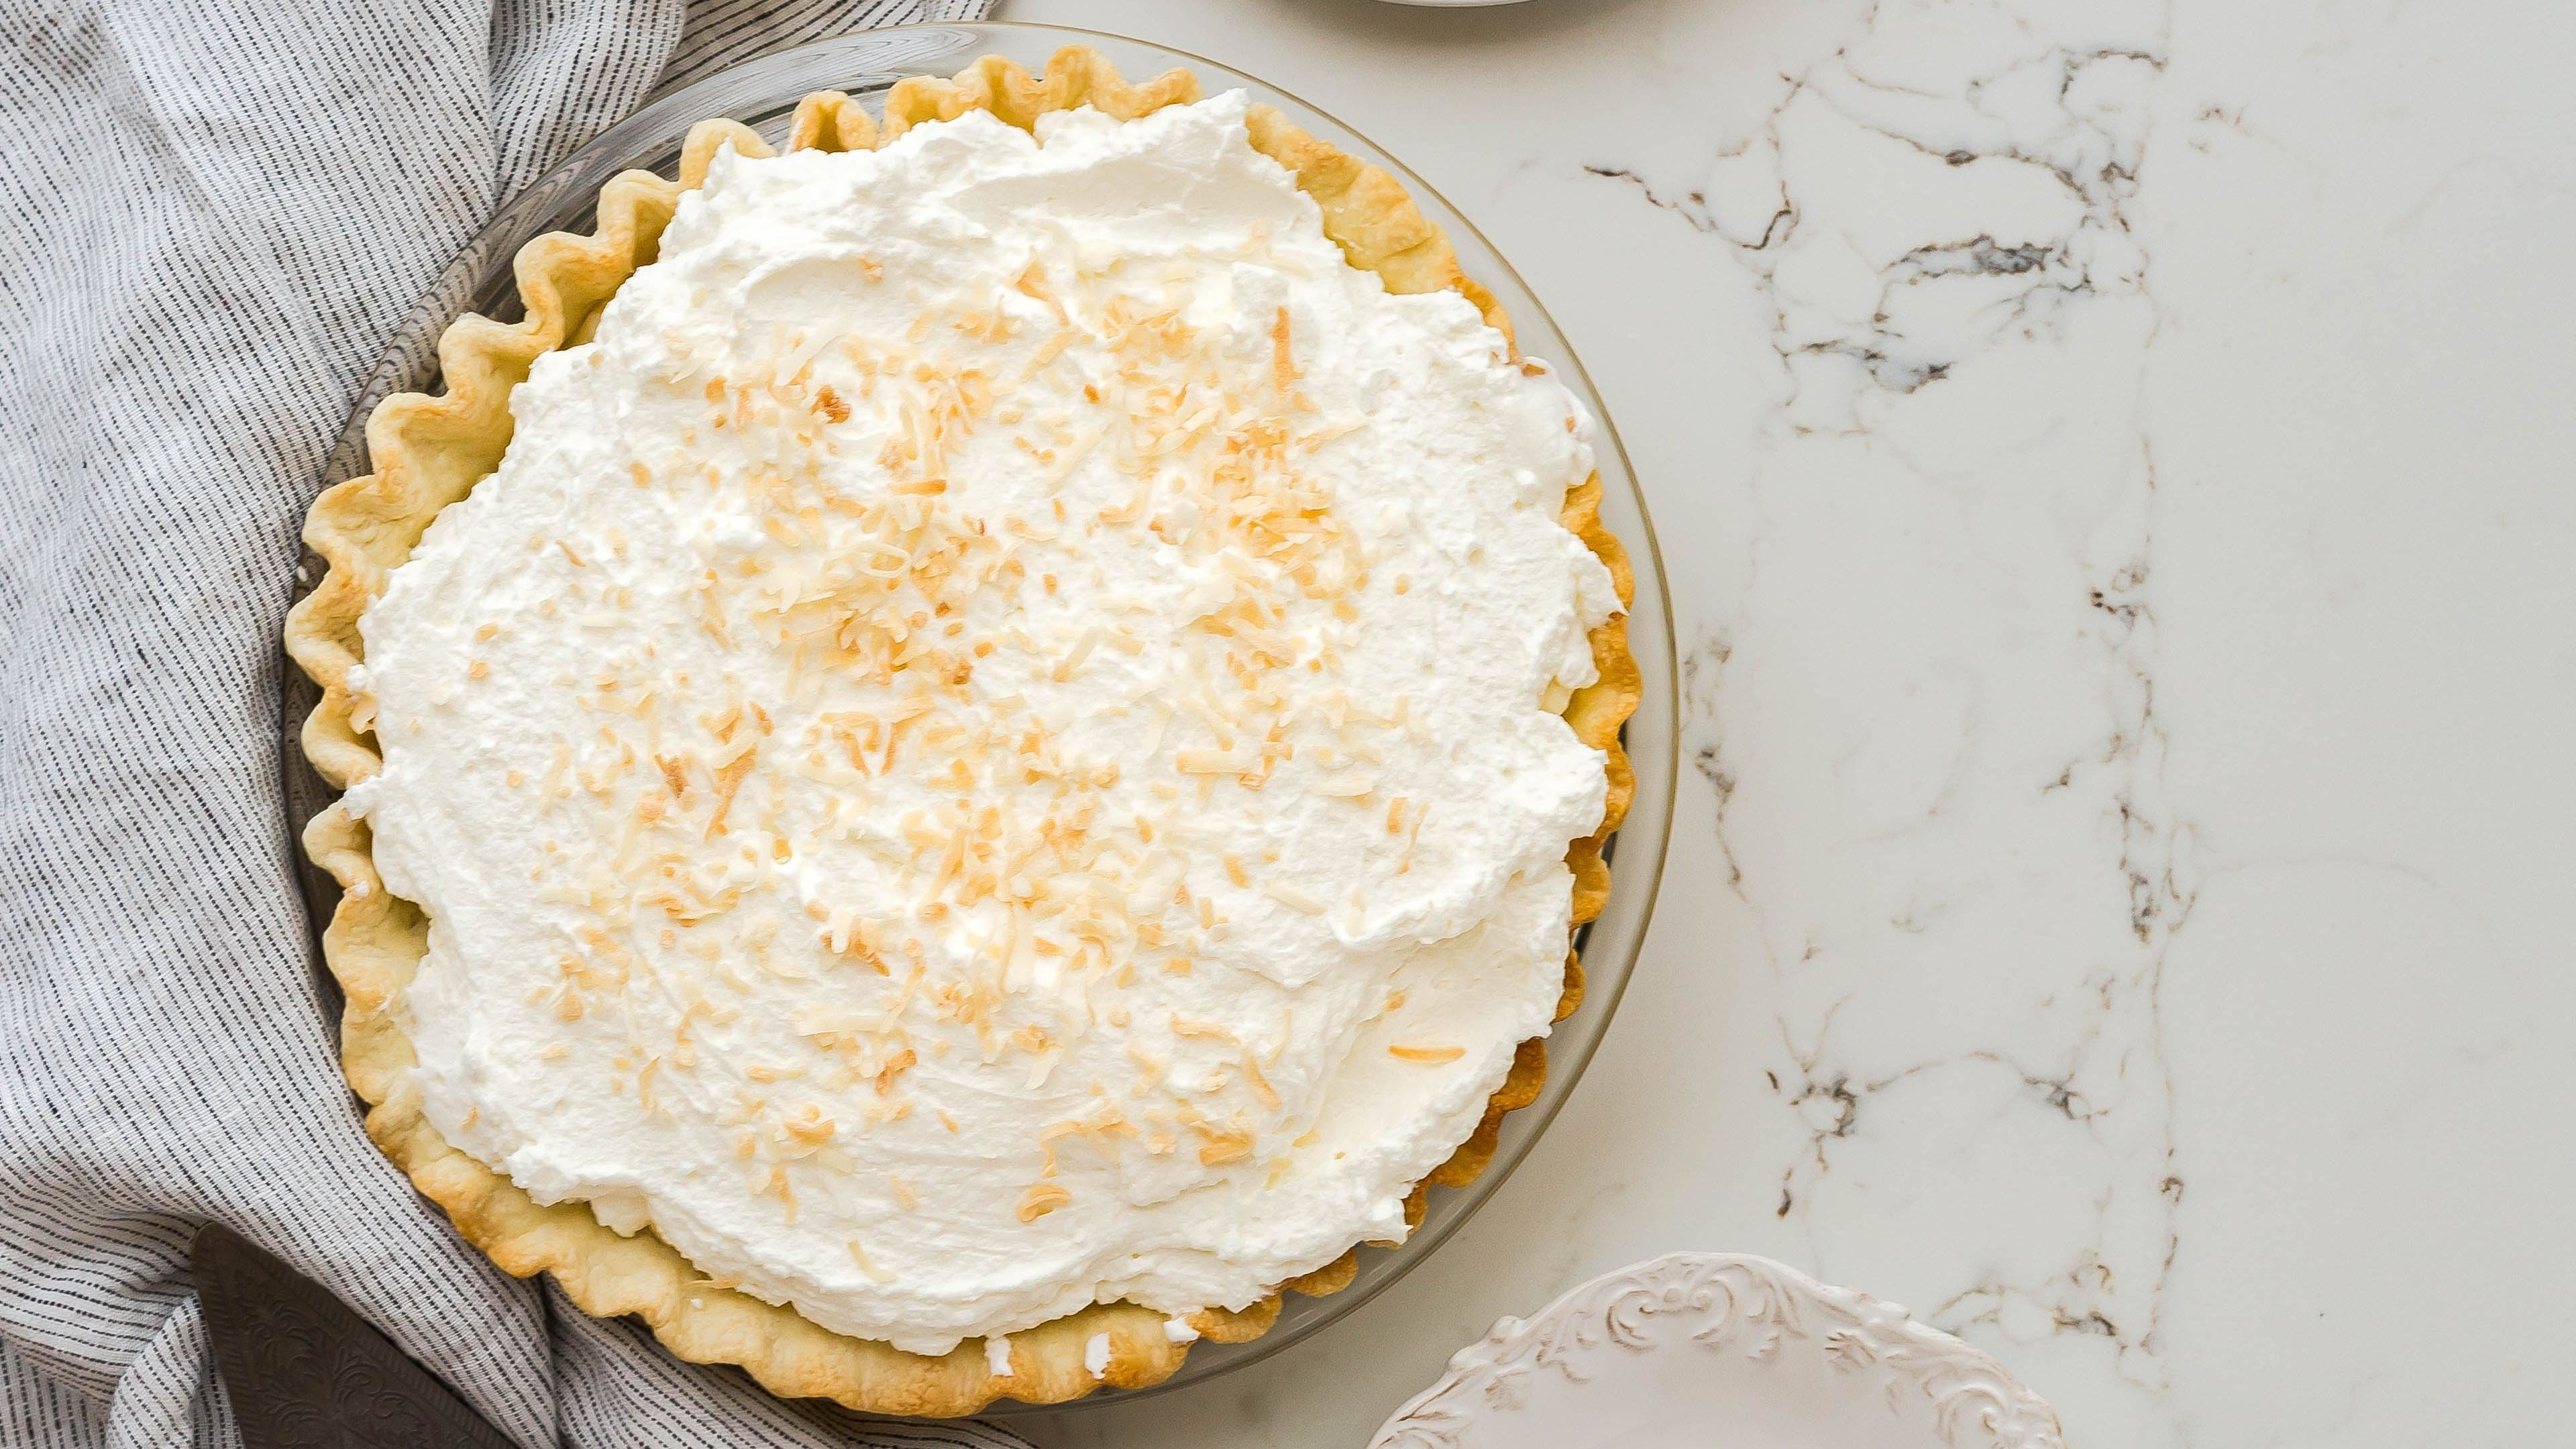 This Cornmeal Pie Crust Is Extremely Forgiving